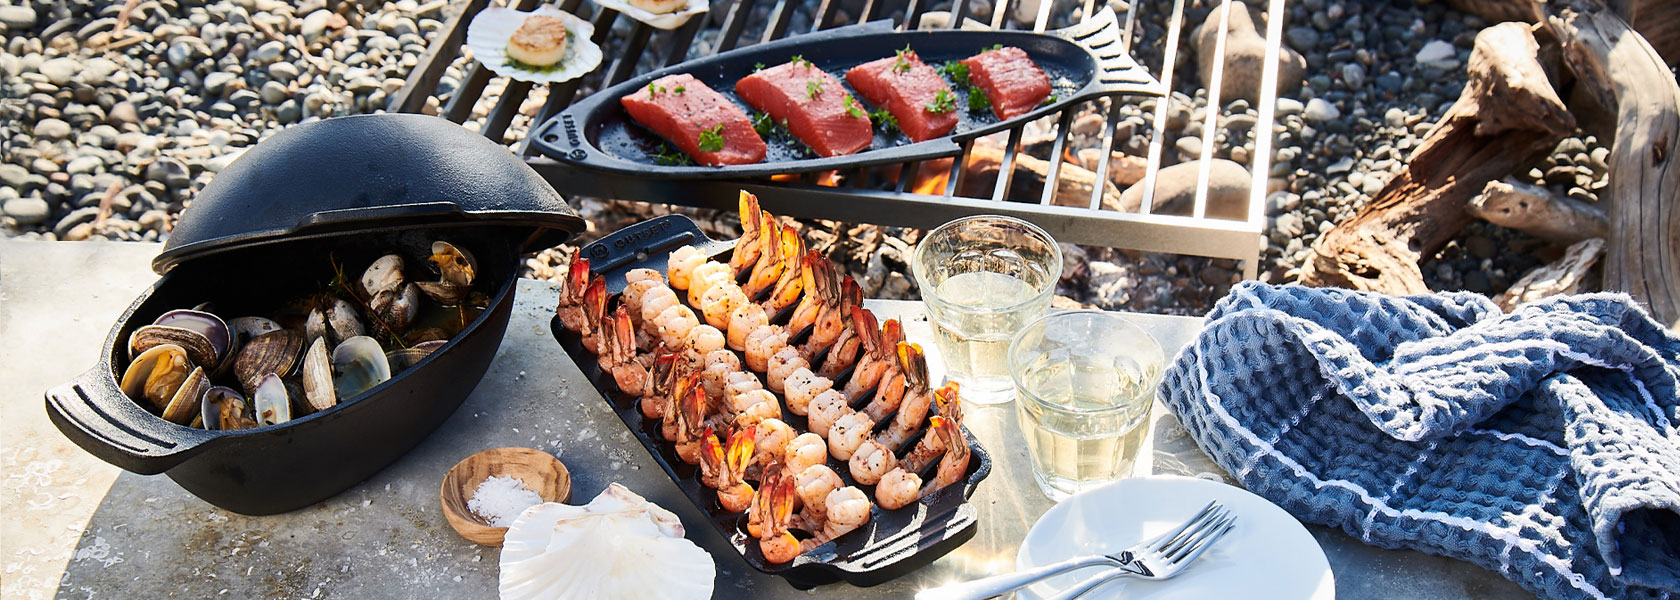 Cast iron grilling cookware on wooden table